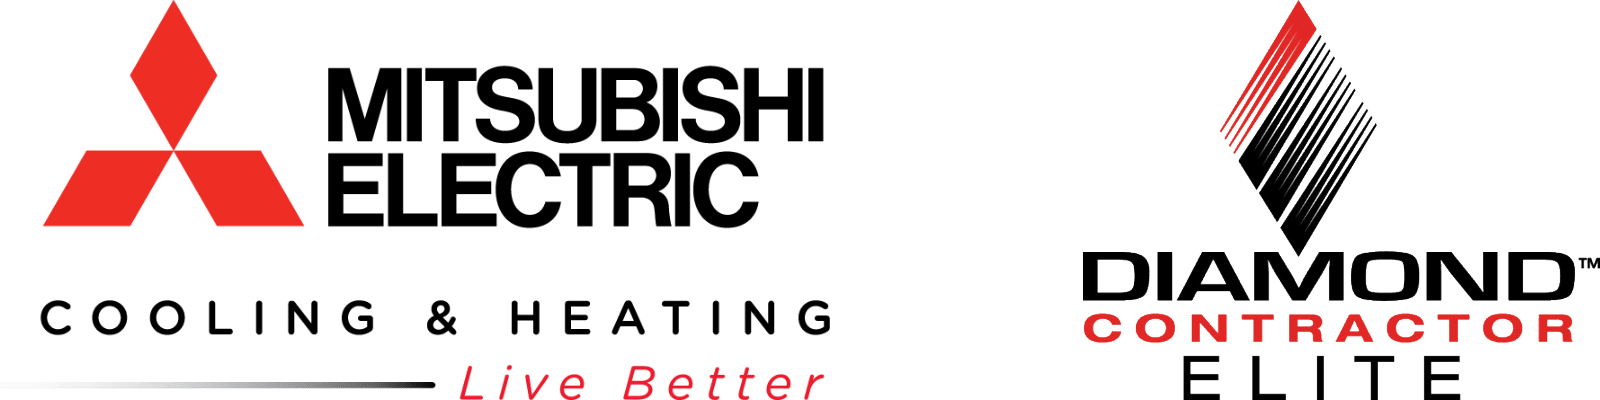 mitsubishi, eberts heating and cooling, mansfield, ohio